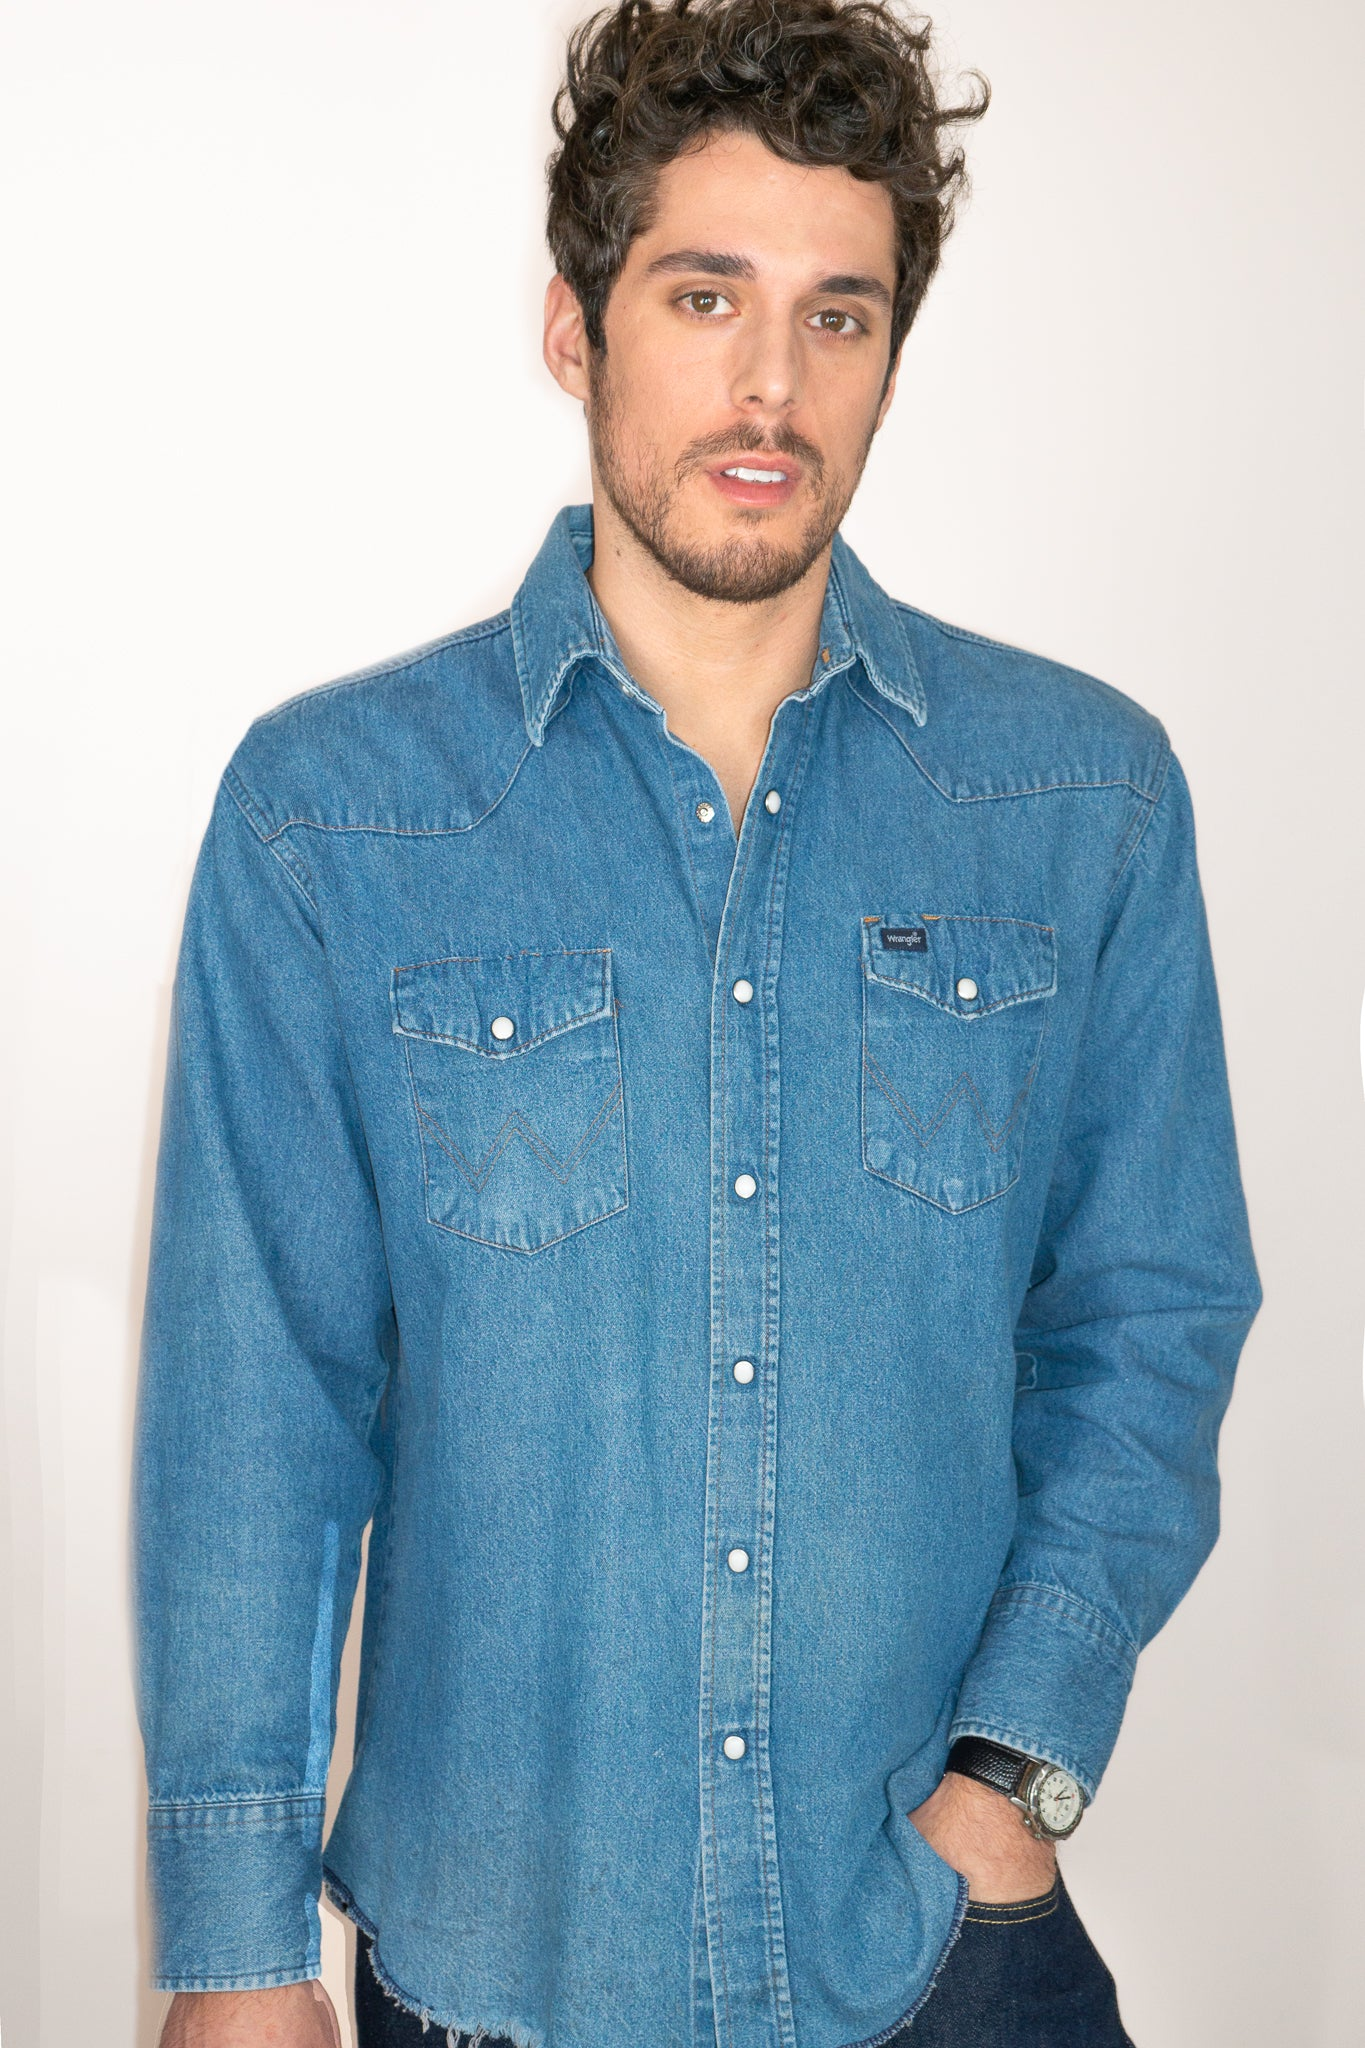 Vintage Wrangler Denim Shirt - The Canyon